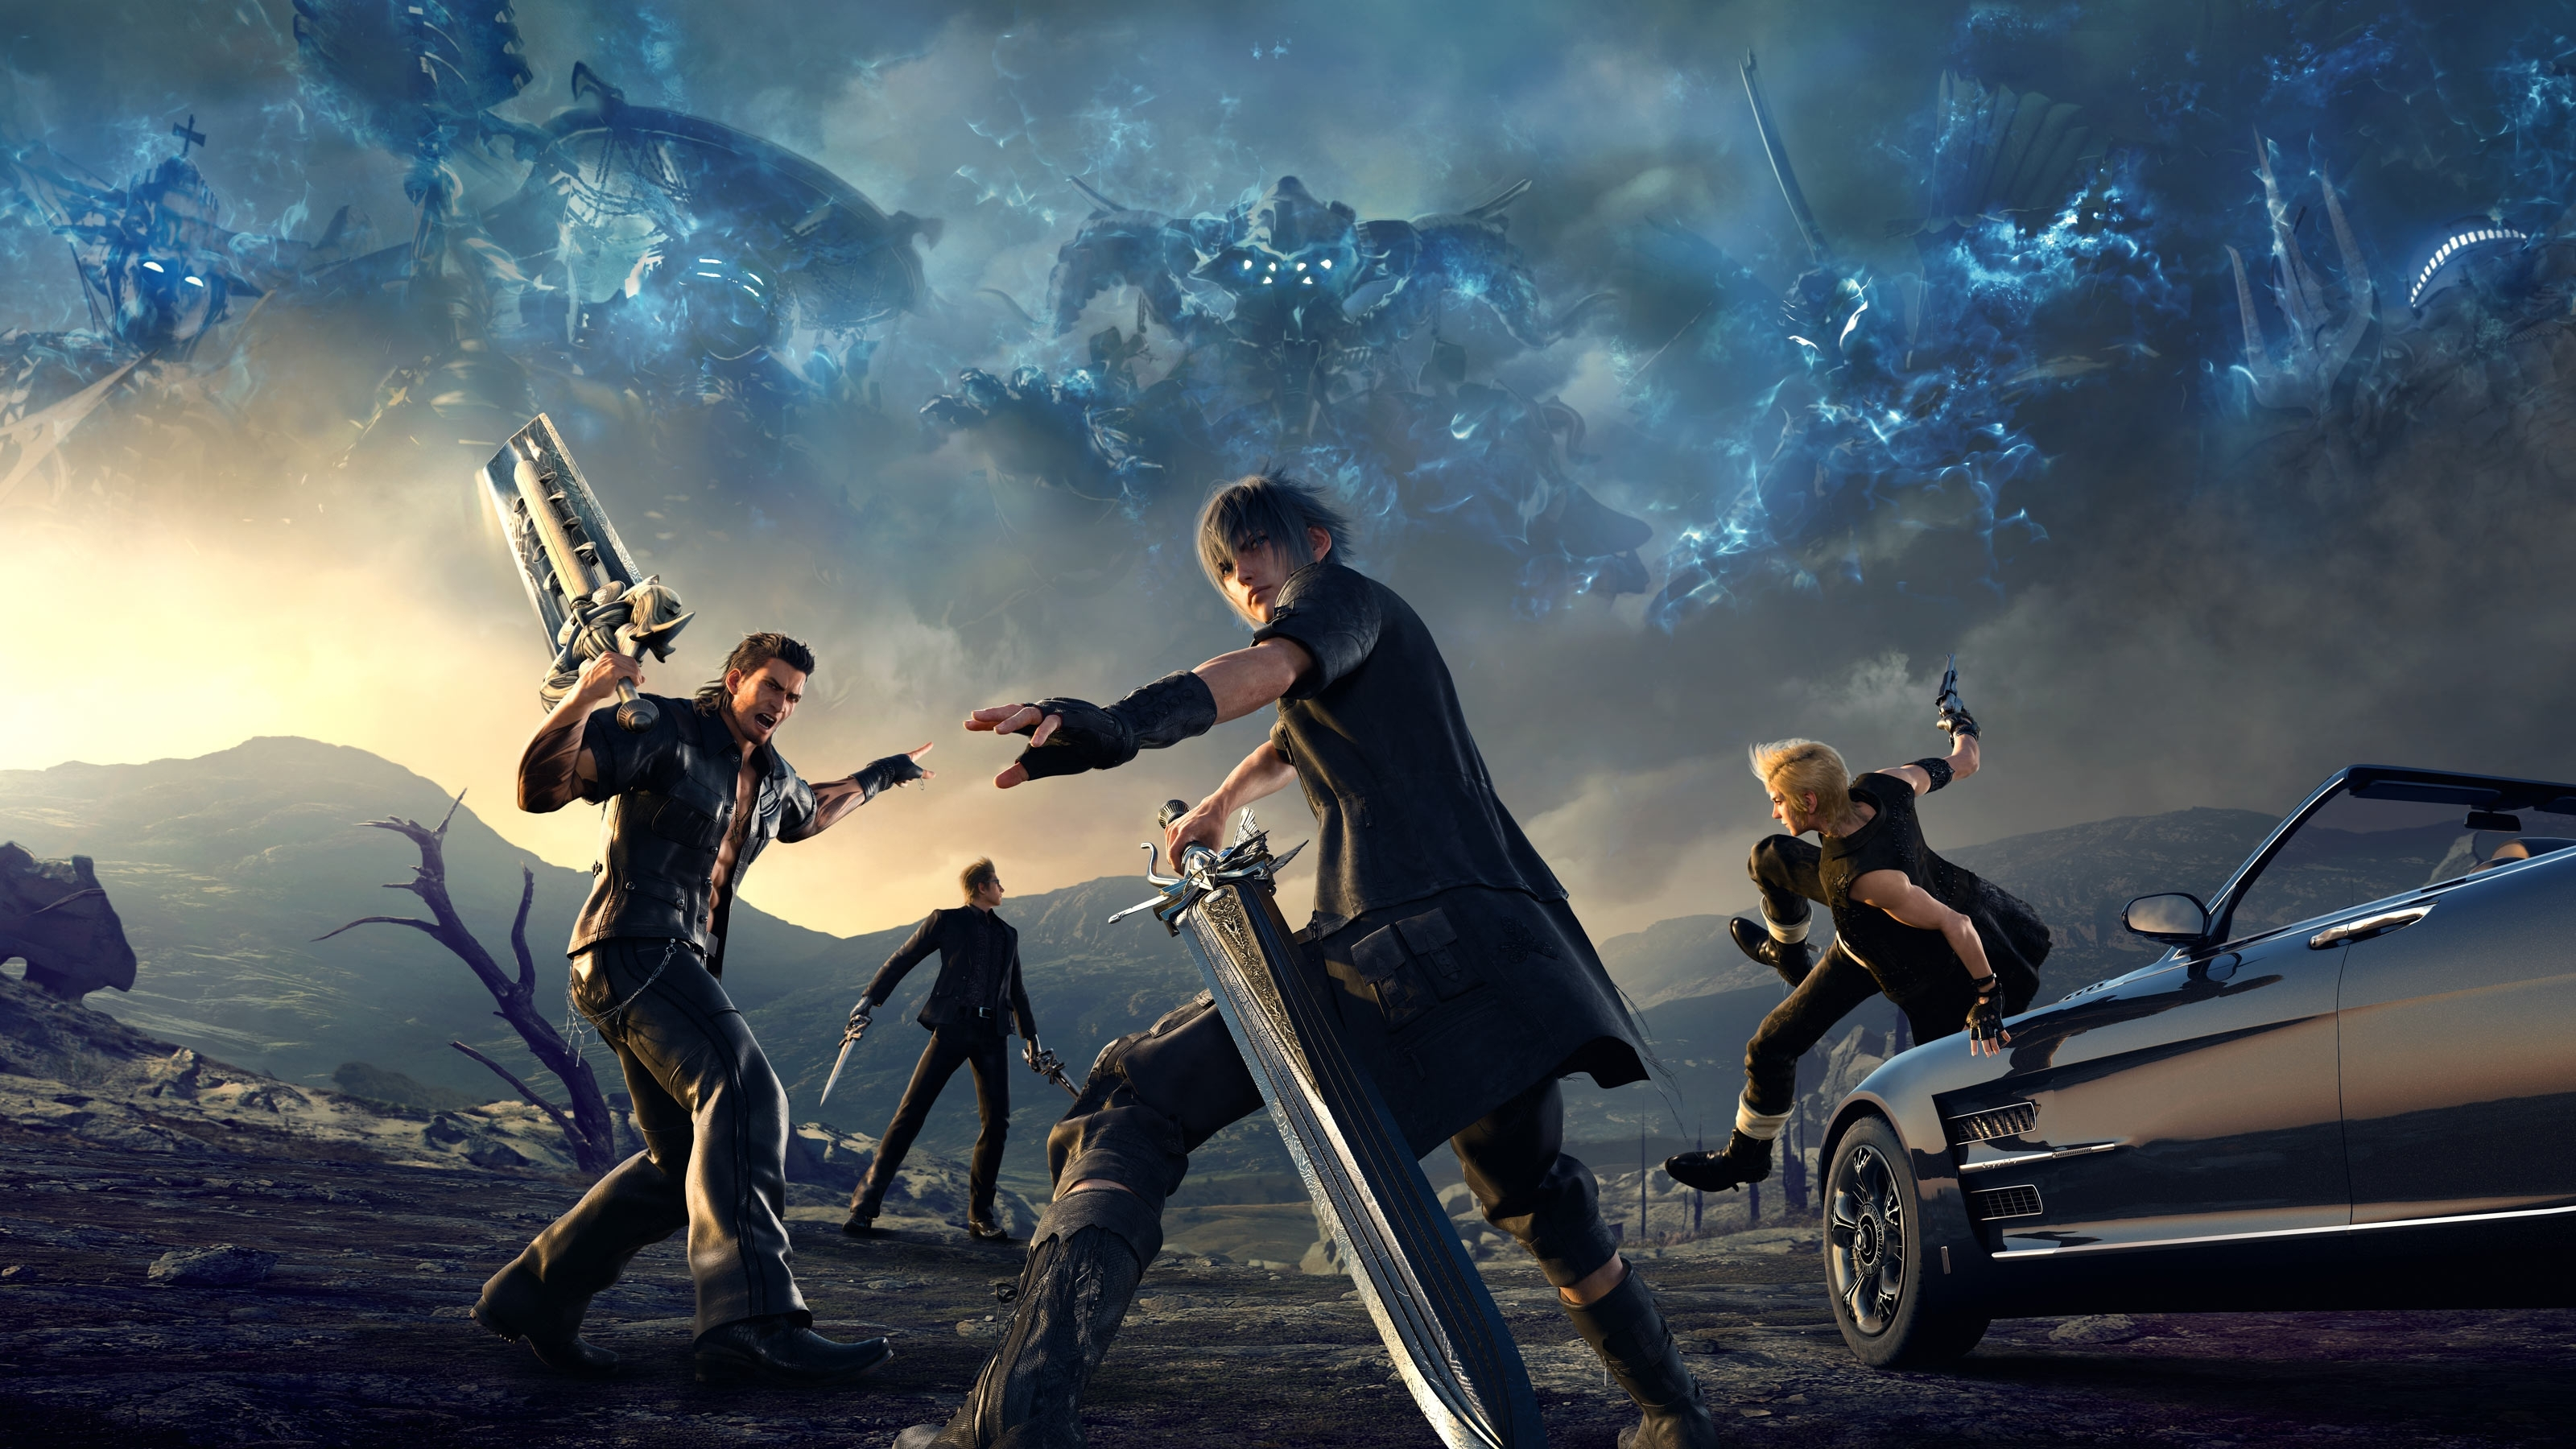 final fantasy xv full hd wallpaper and background image | 3200x1800